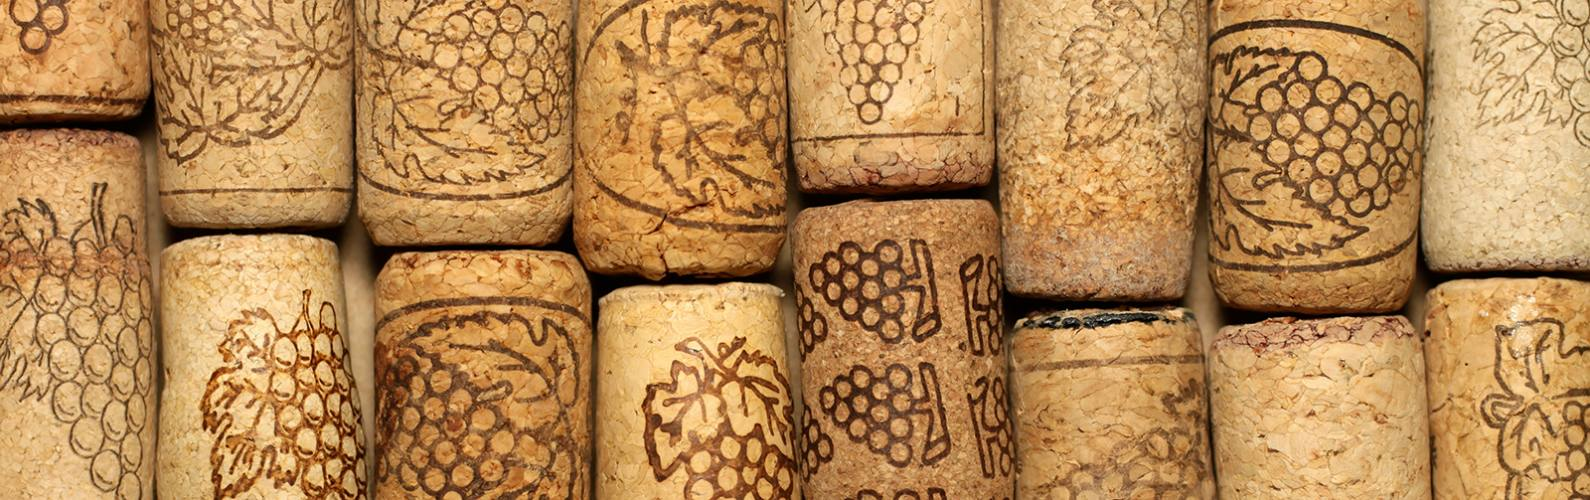 Don't throw away your Christmas wine corks!